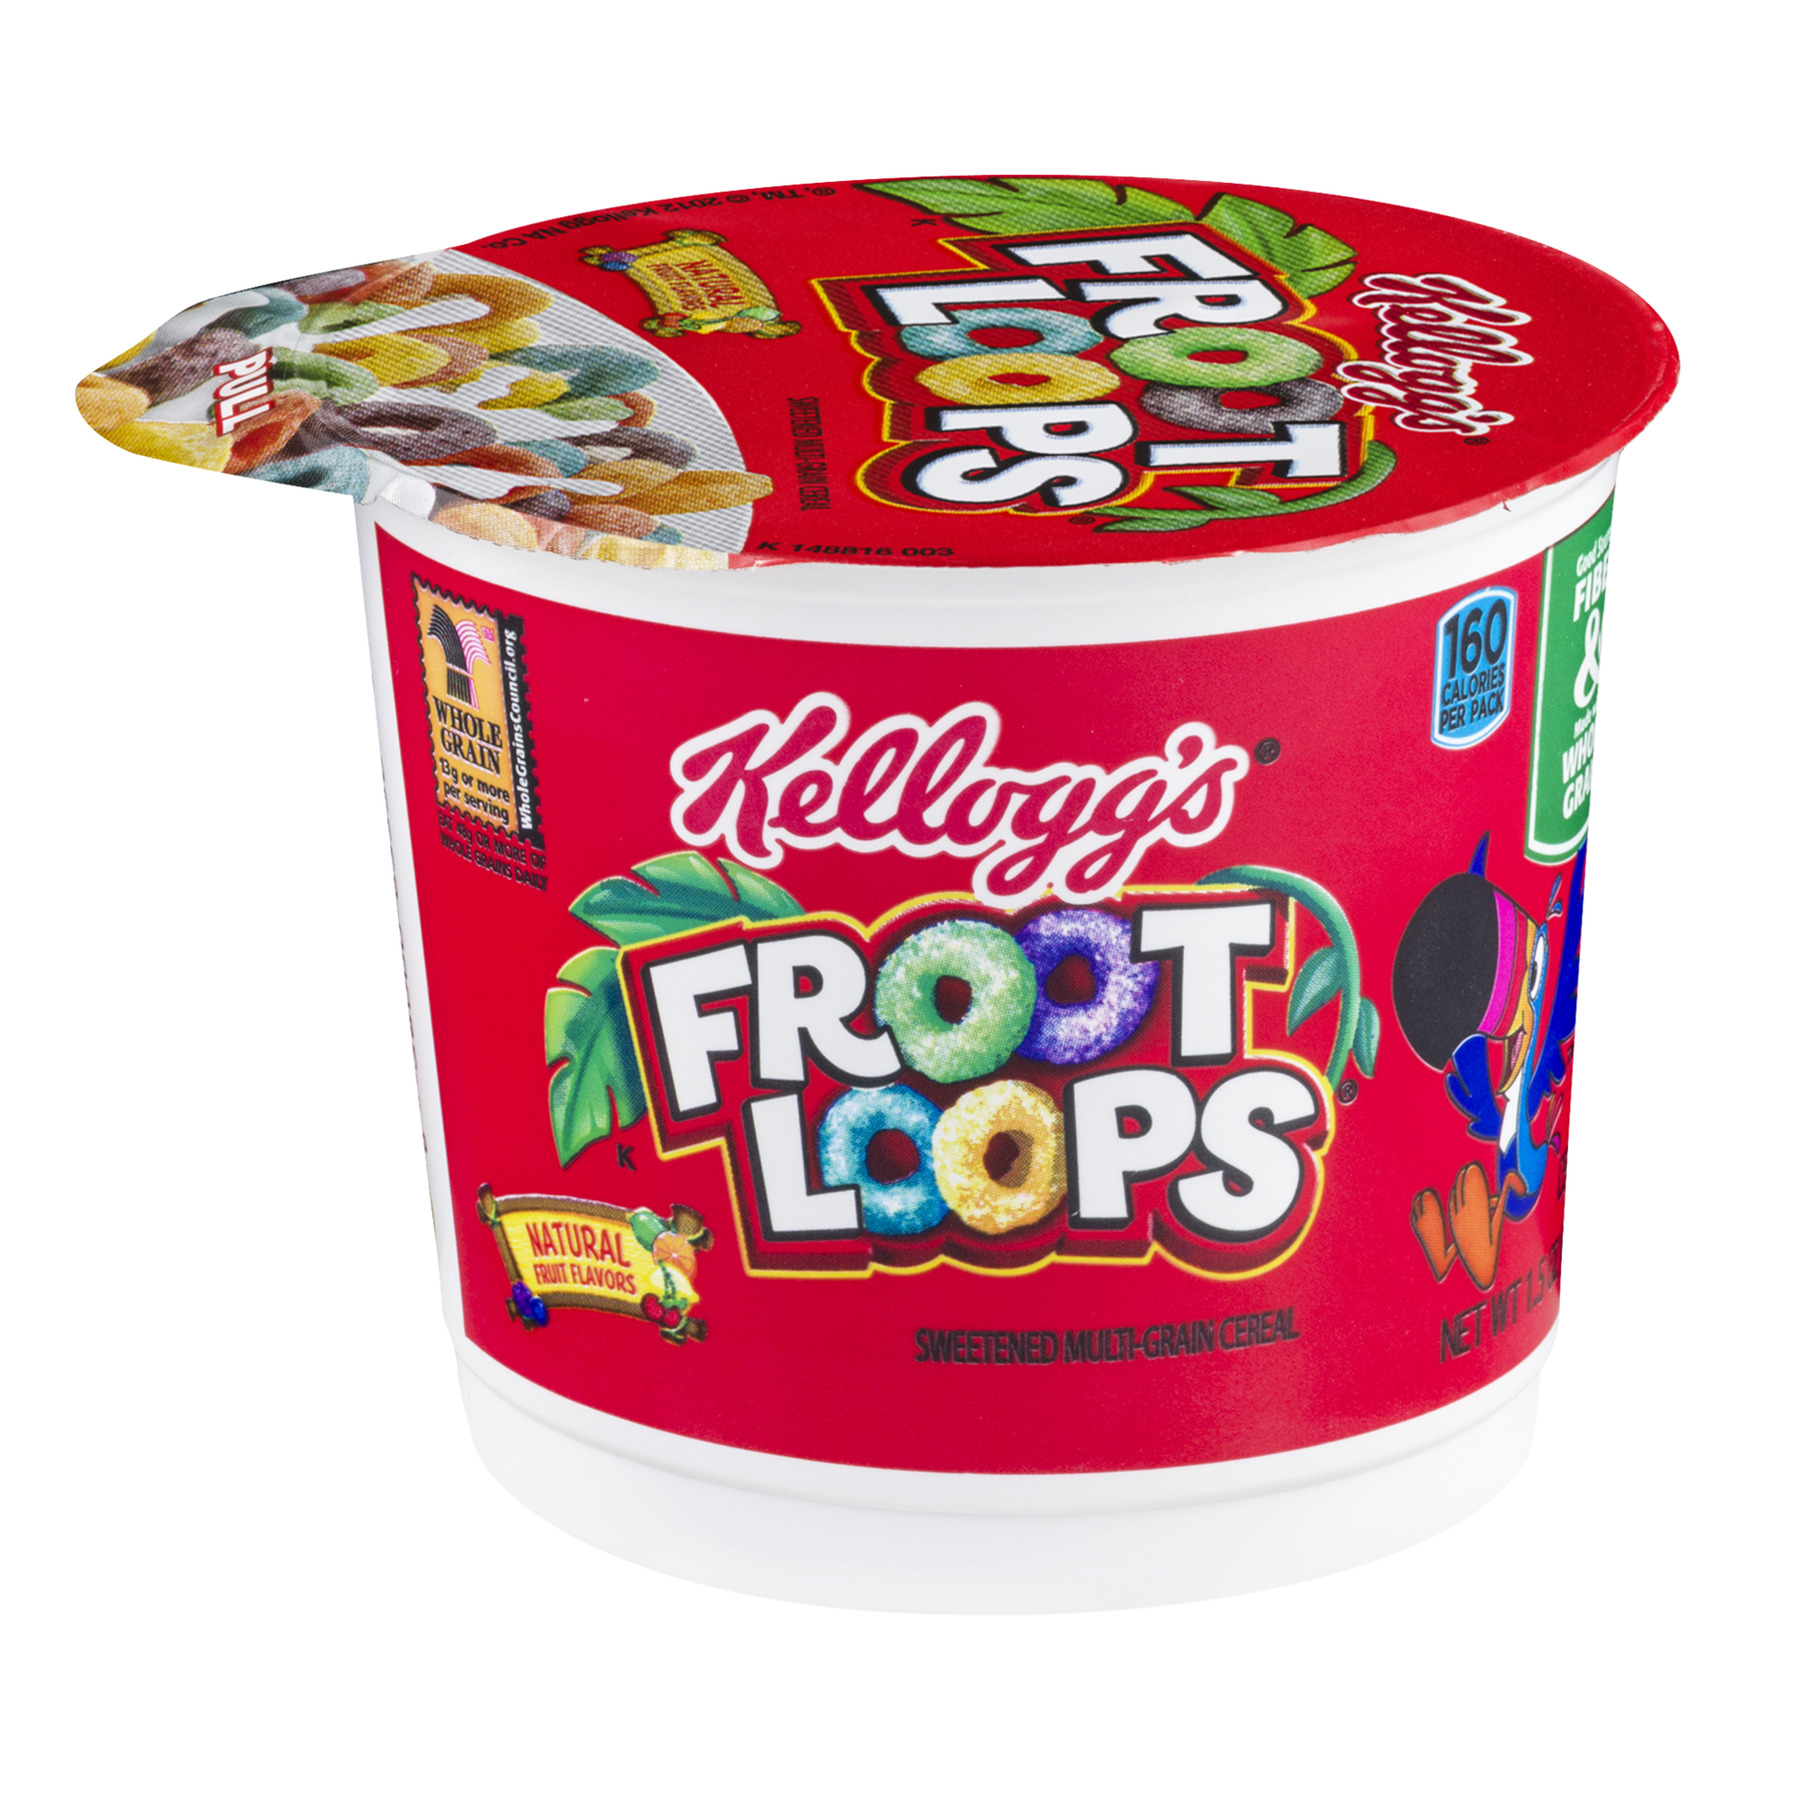 Kellogg's Froot Loops Breakfast Cereal, 1.5 Oz, Cup